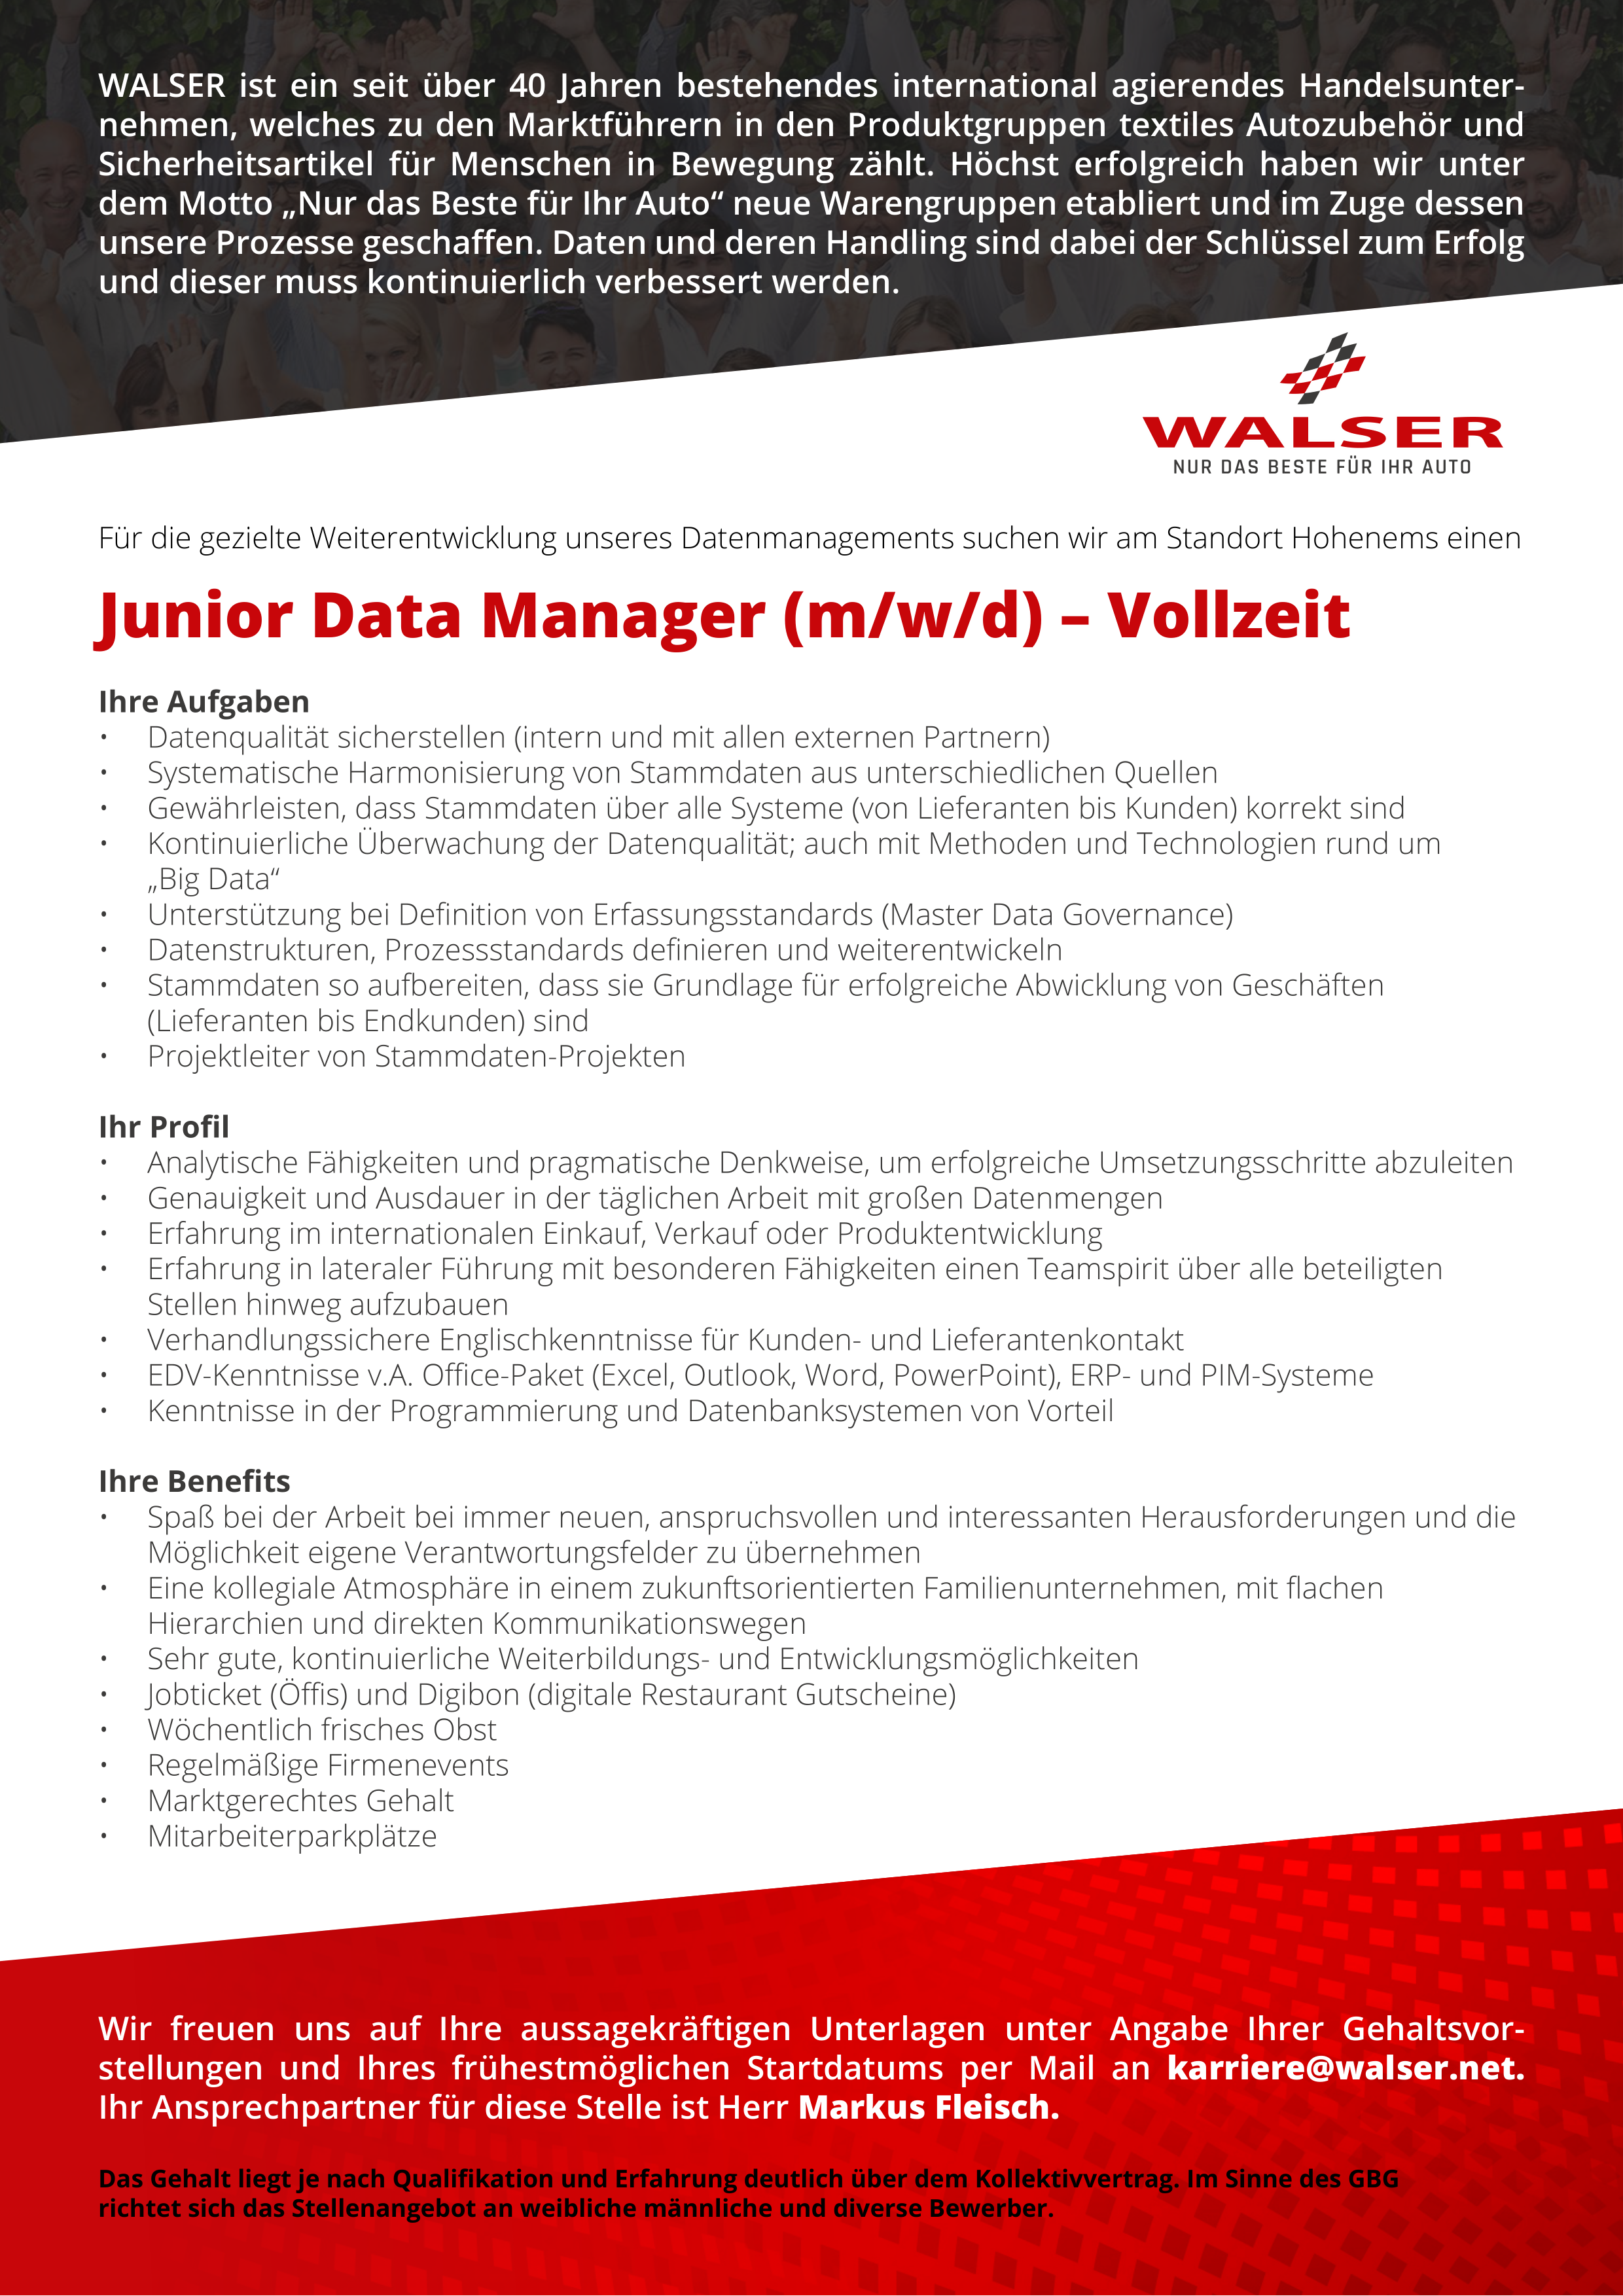 Junior Data Manager (m/w/d)